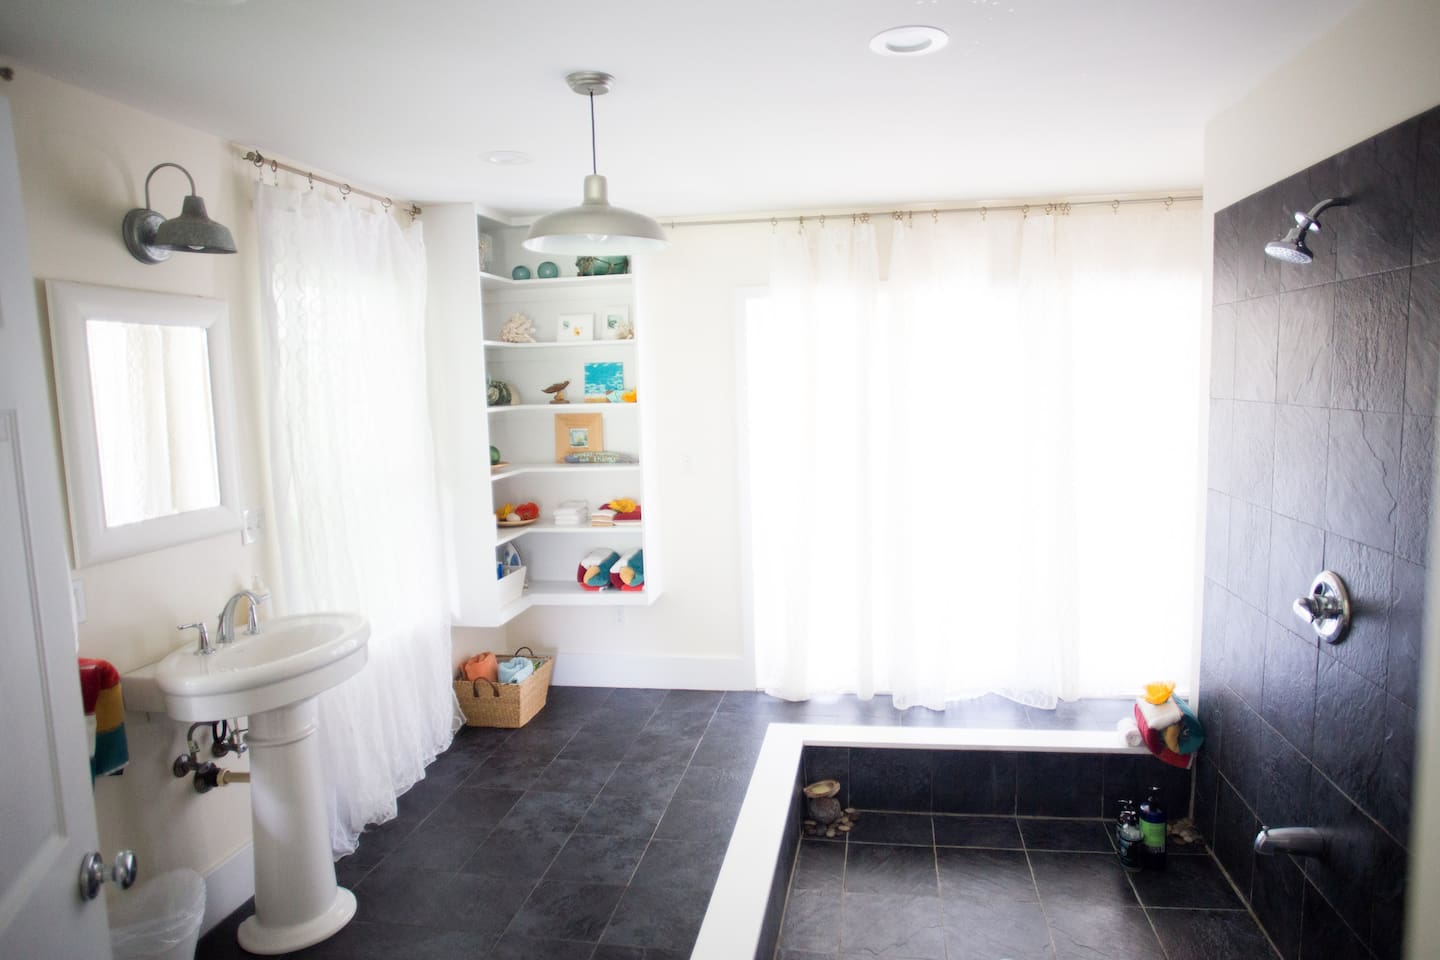 Spacious and airy bathroom with open shower